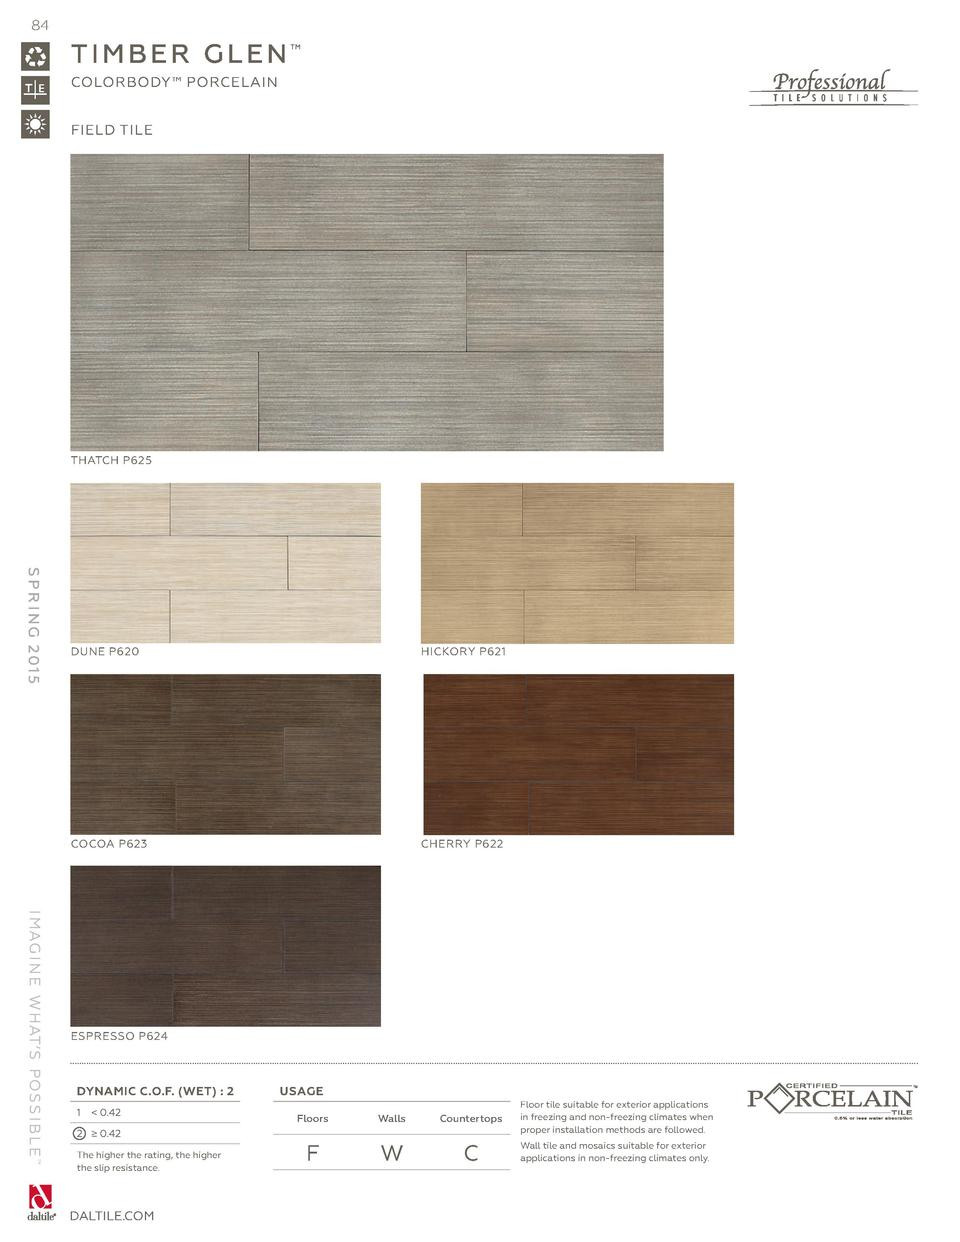 timberland hardwood floors omaha of daltile spring 2015 catalog simplebooklet com pertaining to 84 timber glen colorbody porcelain field tile thatch p625 s p r i n g 2 01 5 dune p620 hickory